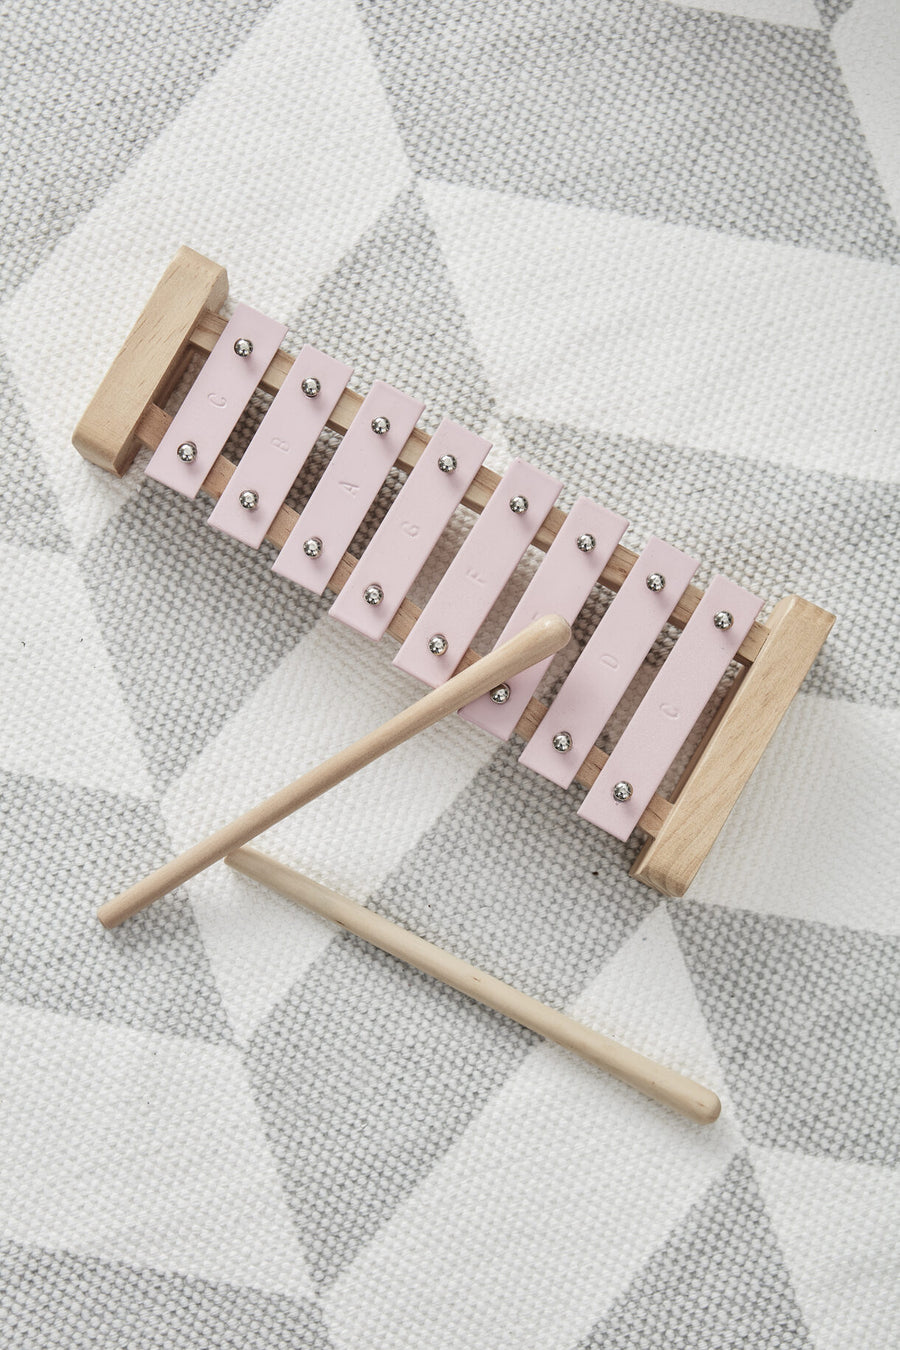 Kids Concept, Wooden Pink Xylophone